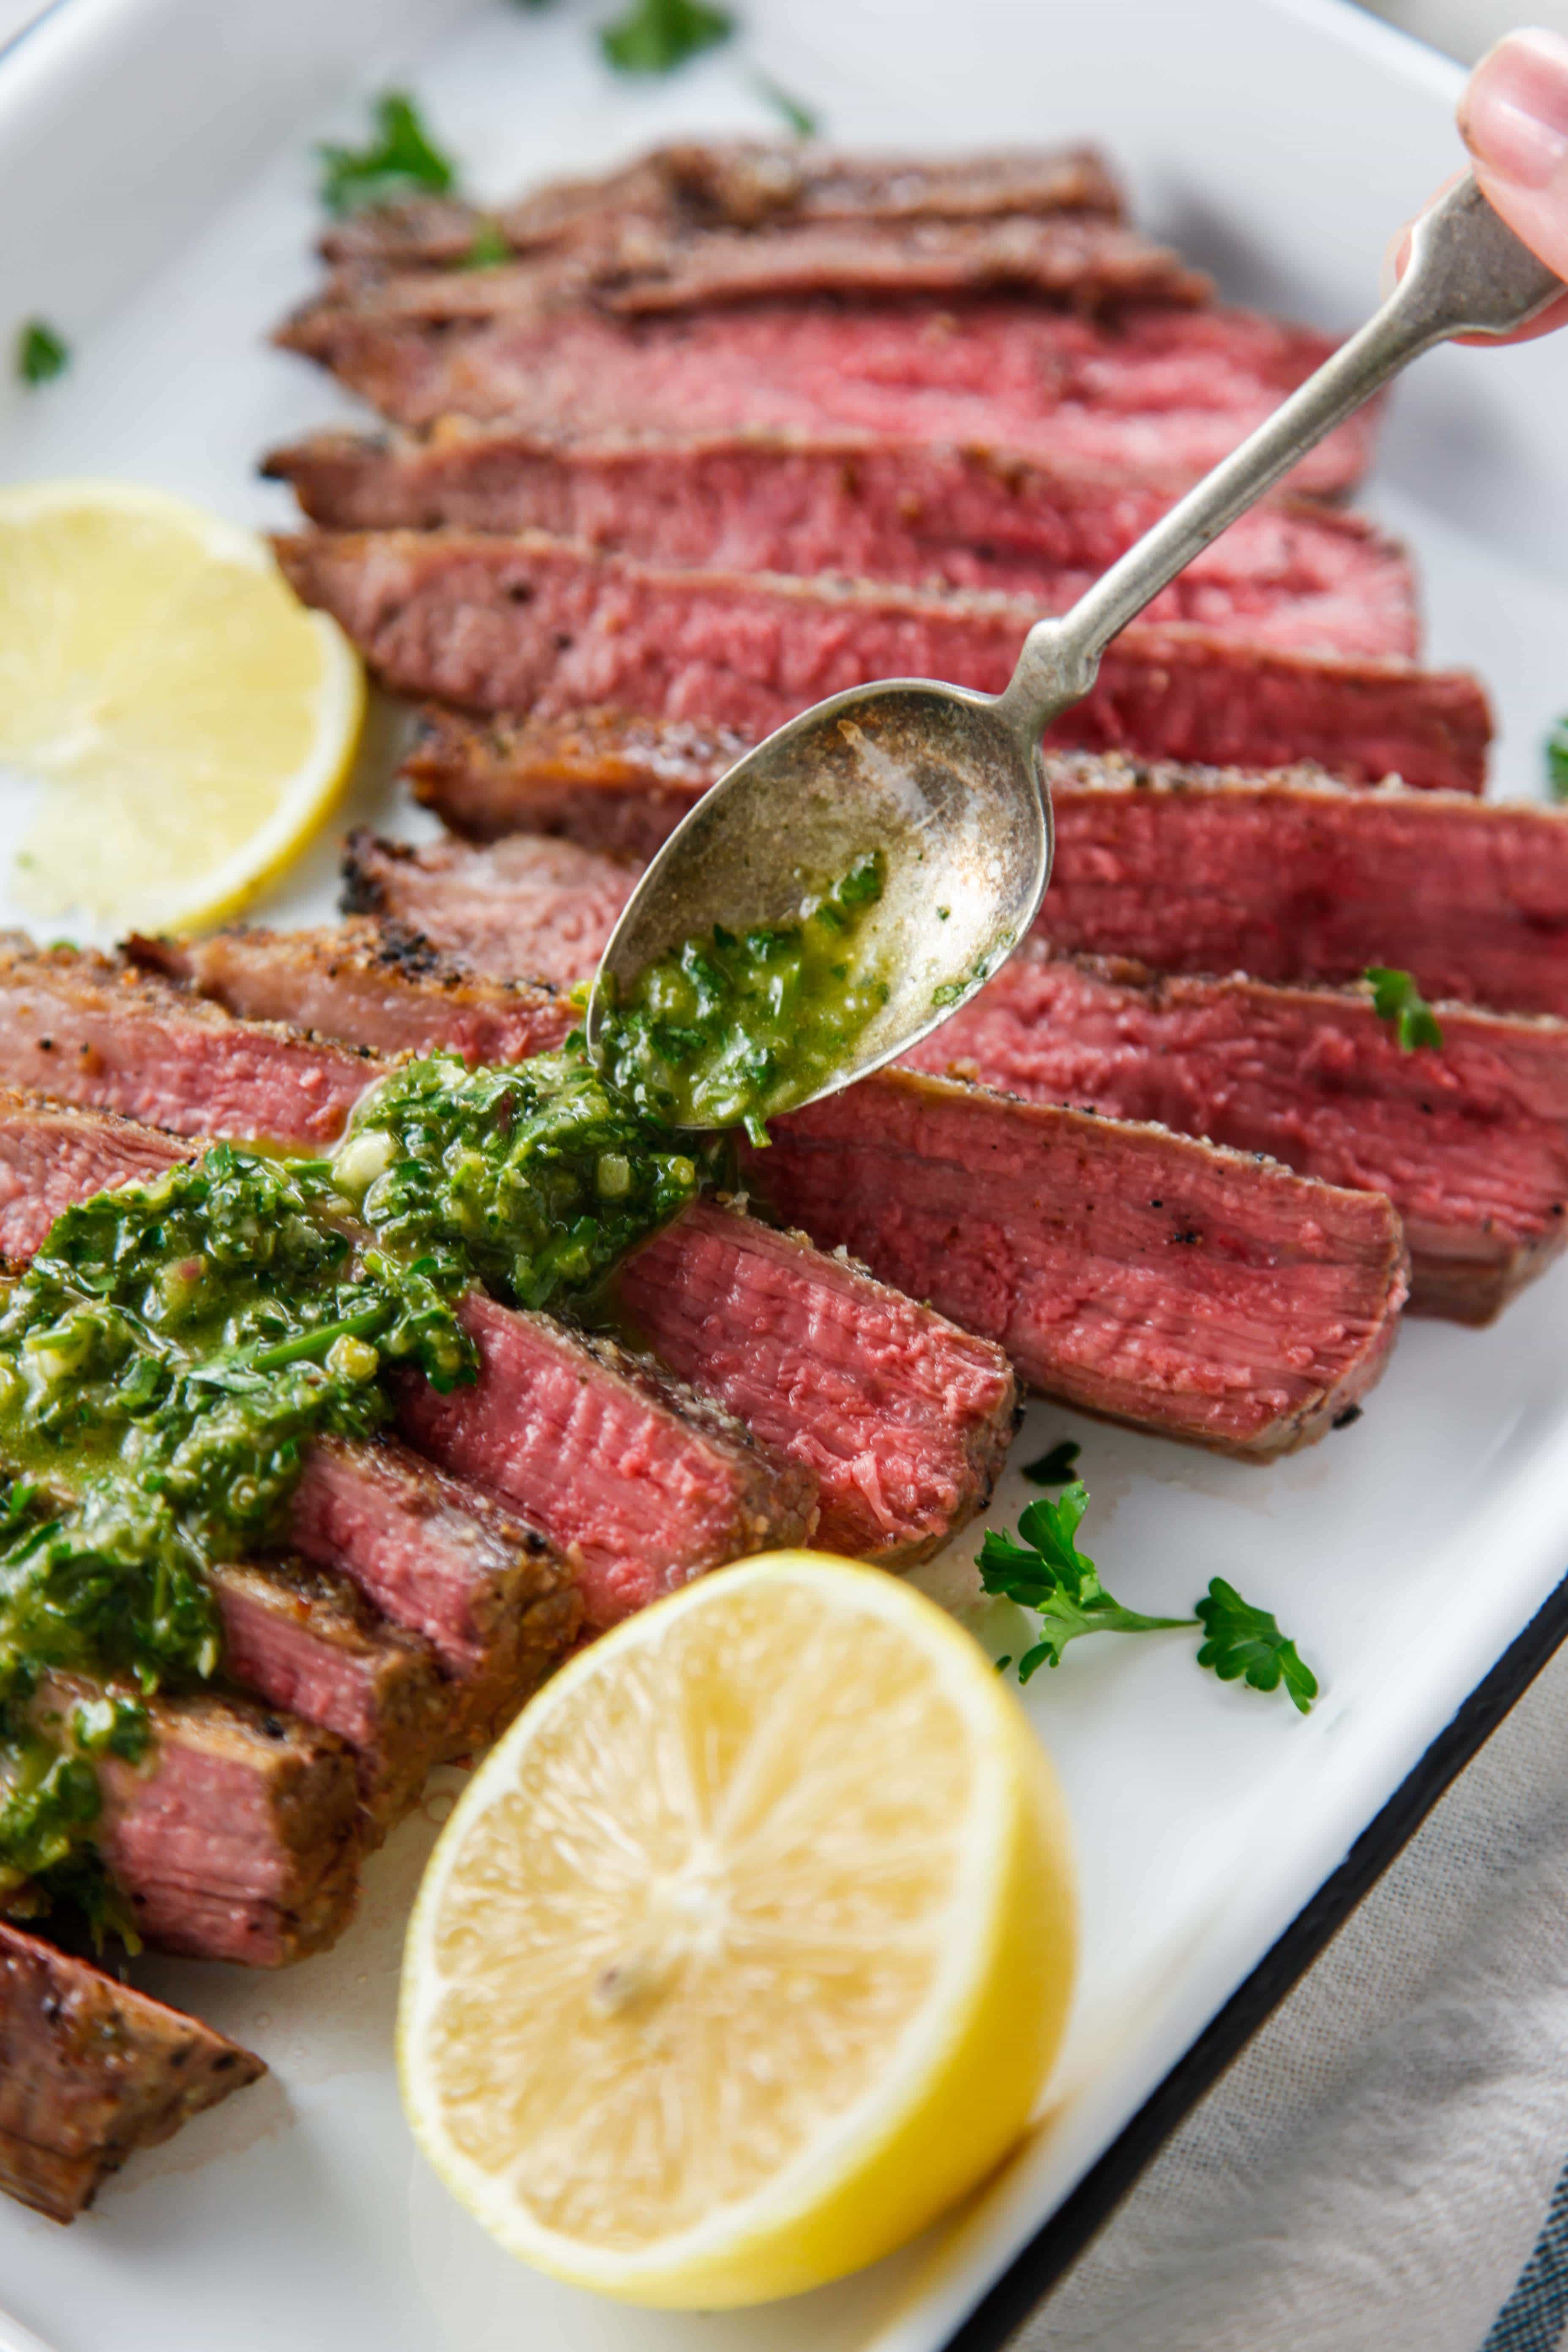 Broiled Flank Steak with Chimichurri being topped with sauce.